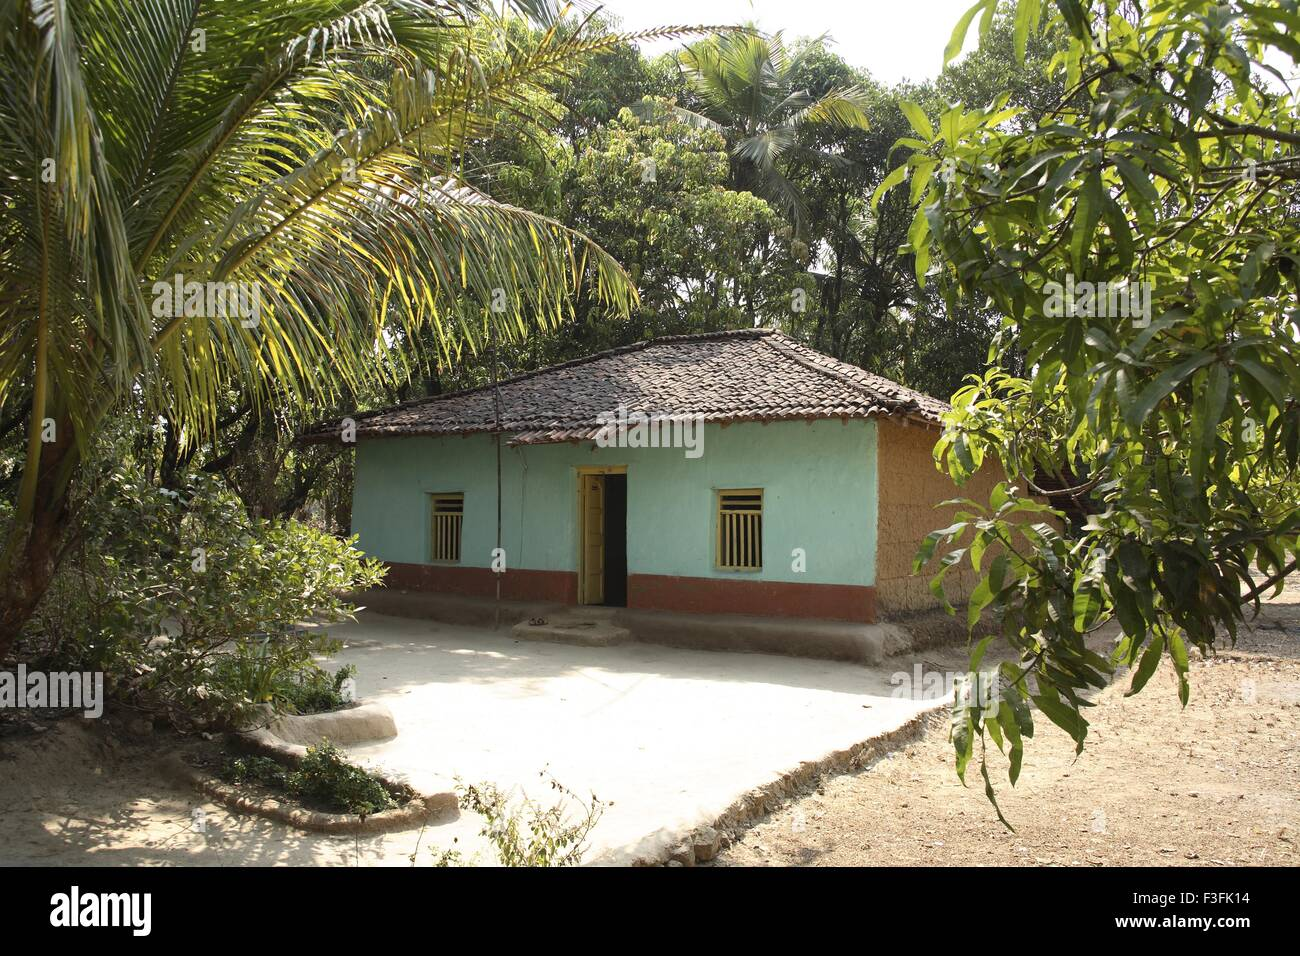 House made of mud and painted roof made of tiles in for Konkan home designs